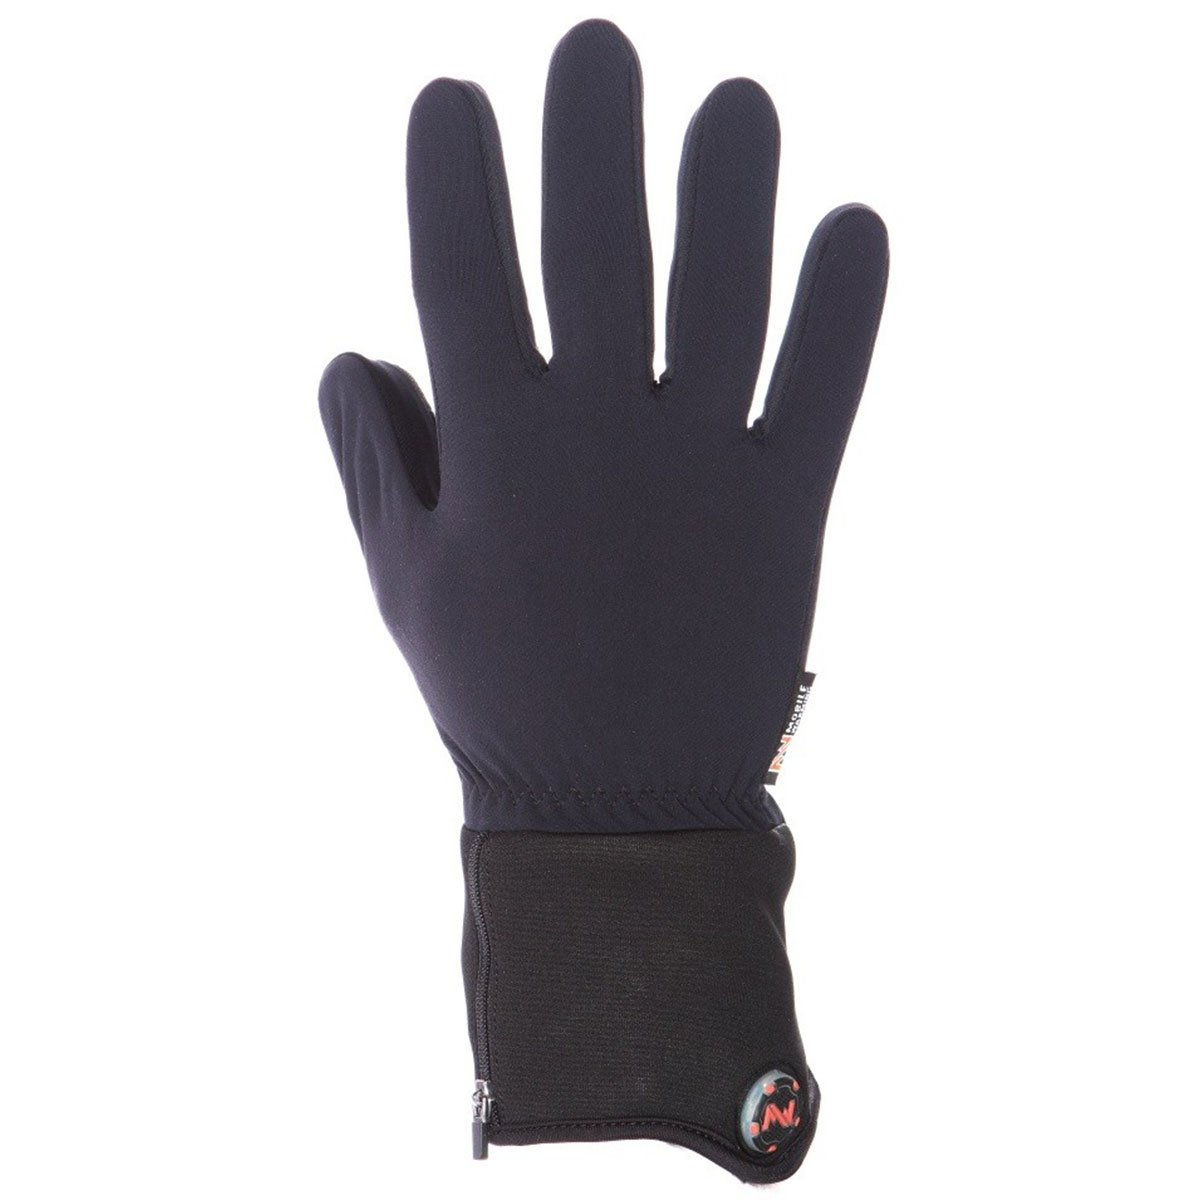 Mobile Warming Unisex-Adult Heated 7.4v Gloves Liner (Black, X-Small)